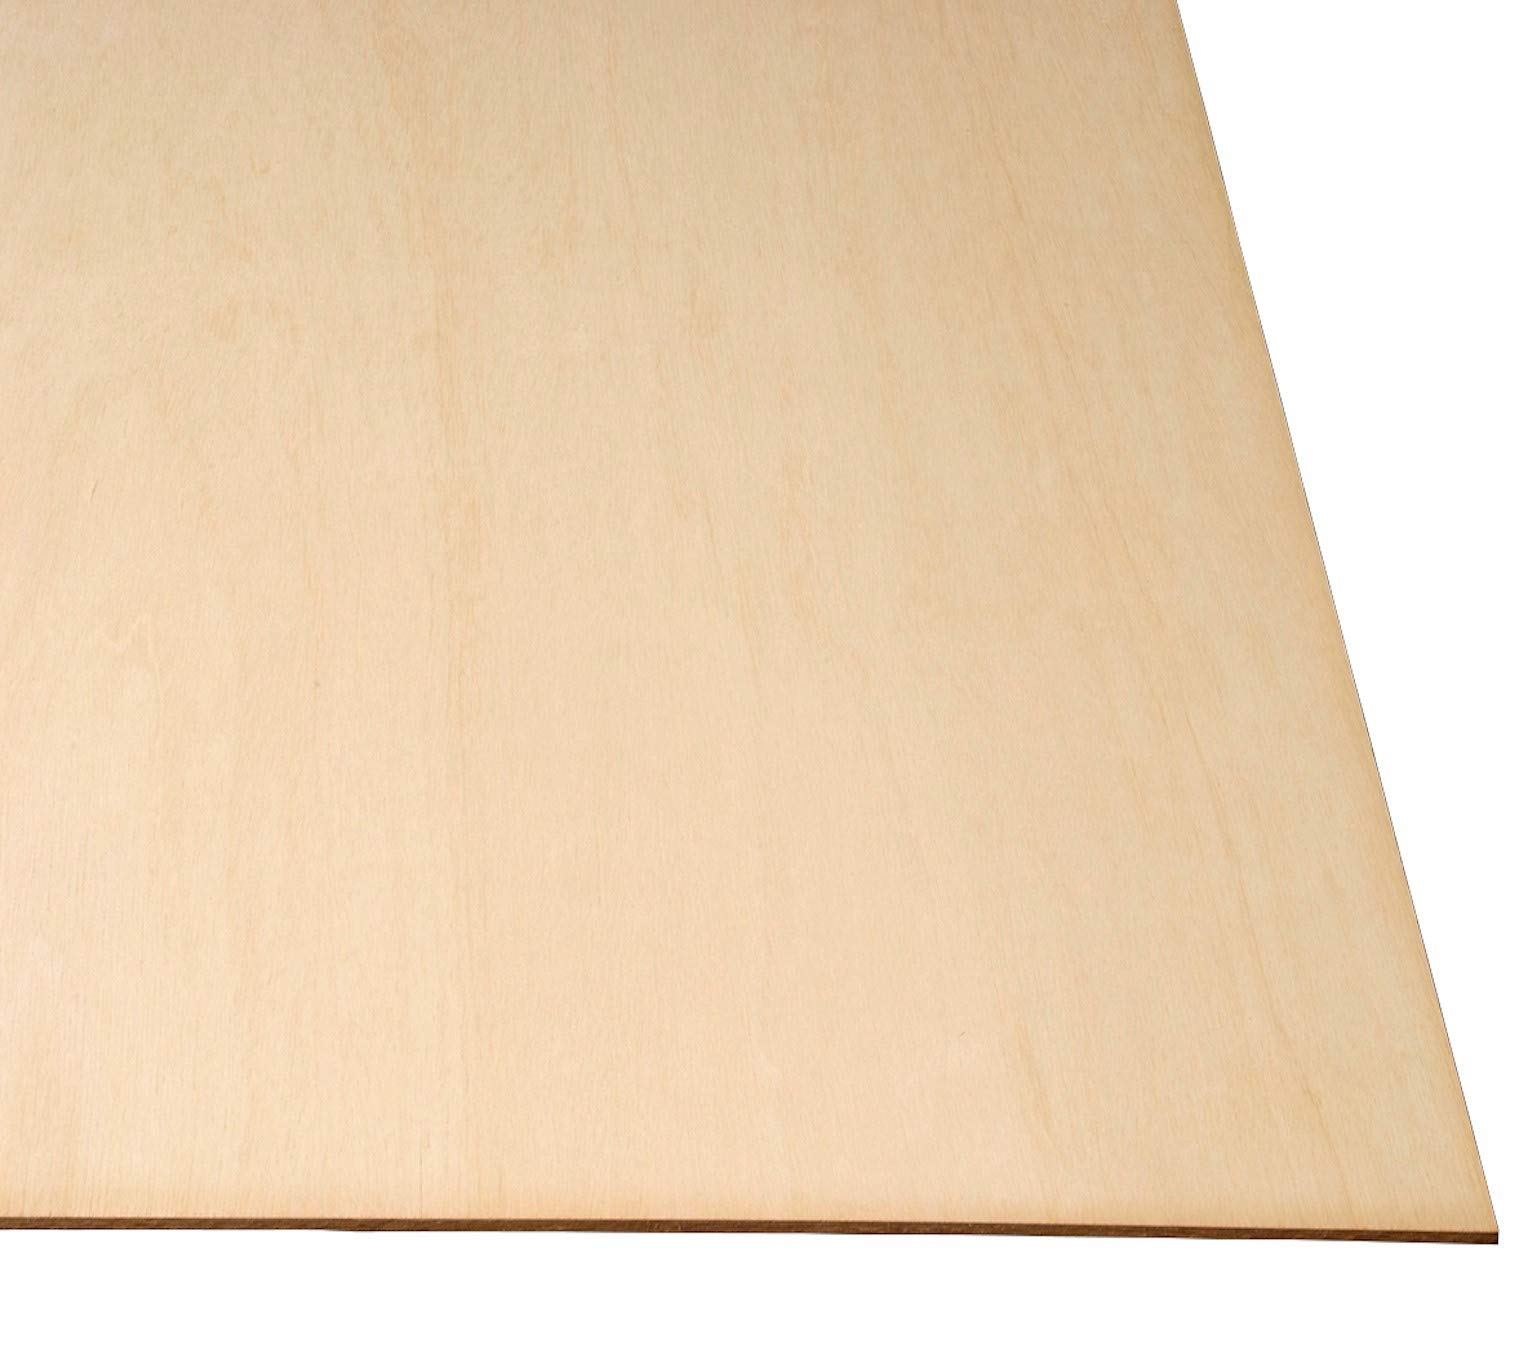 Single Piece of Baltic Birch Plywood, 18mm - 3/4'' x 24'' x 30'' by WOODNSHOP by WOODNSHOP